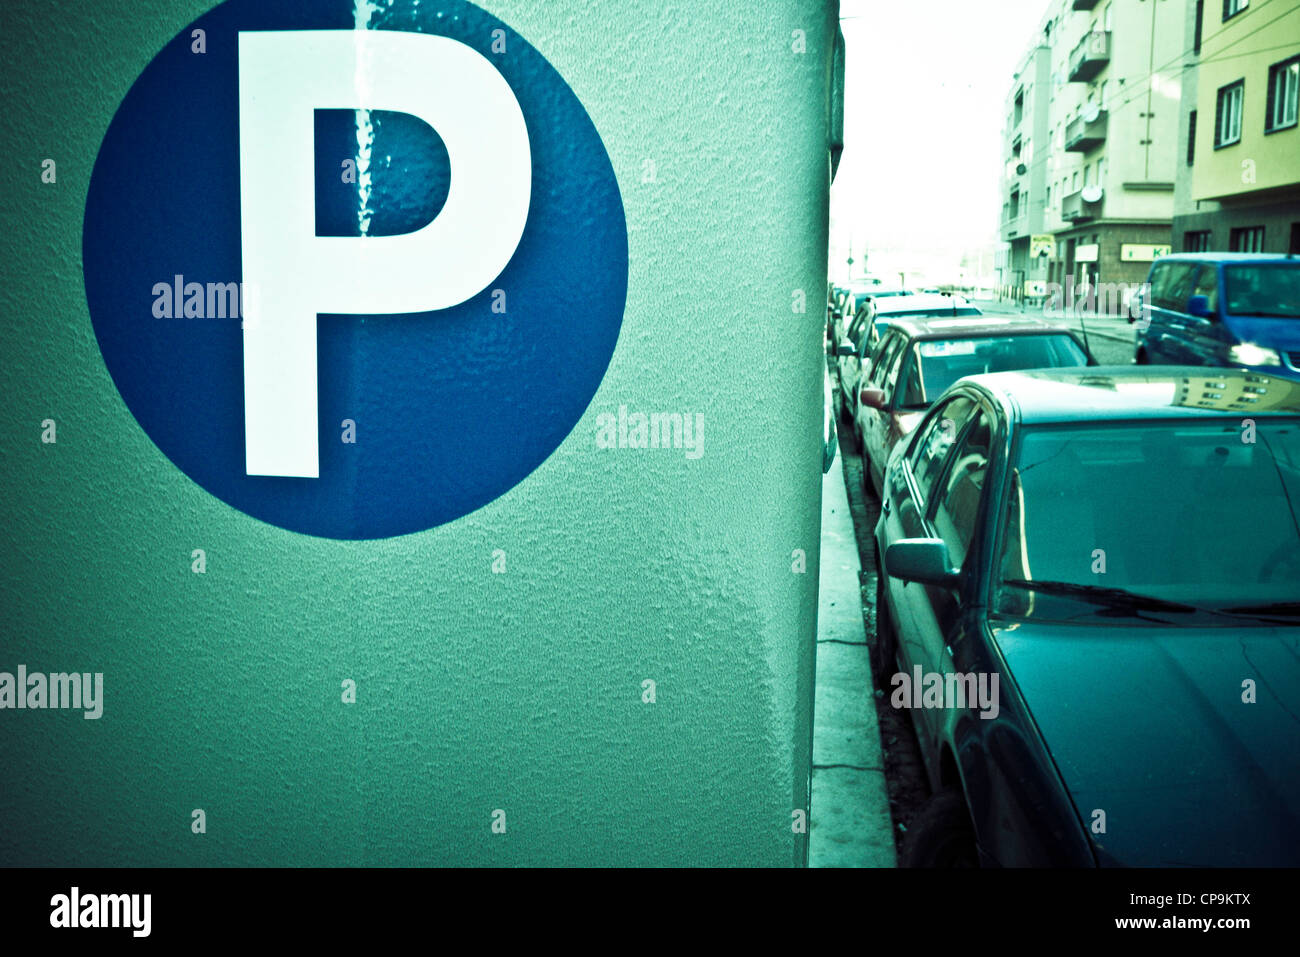 parking sign and cars parked along a street - Stock Image